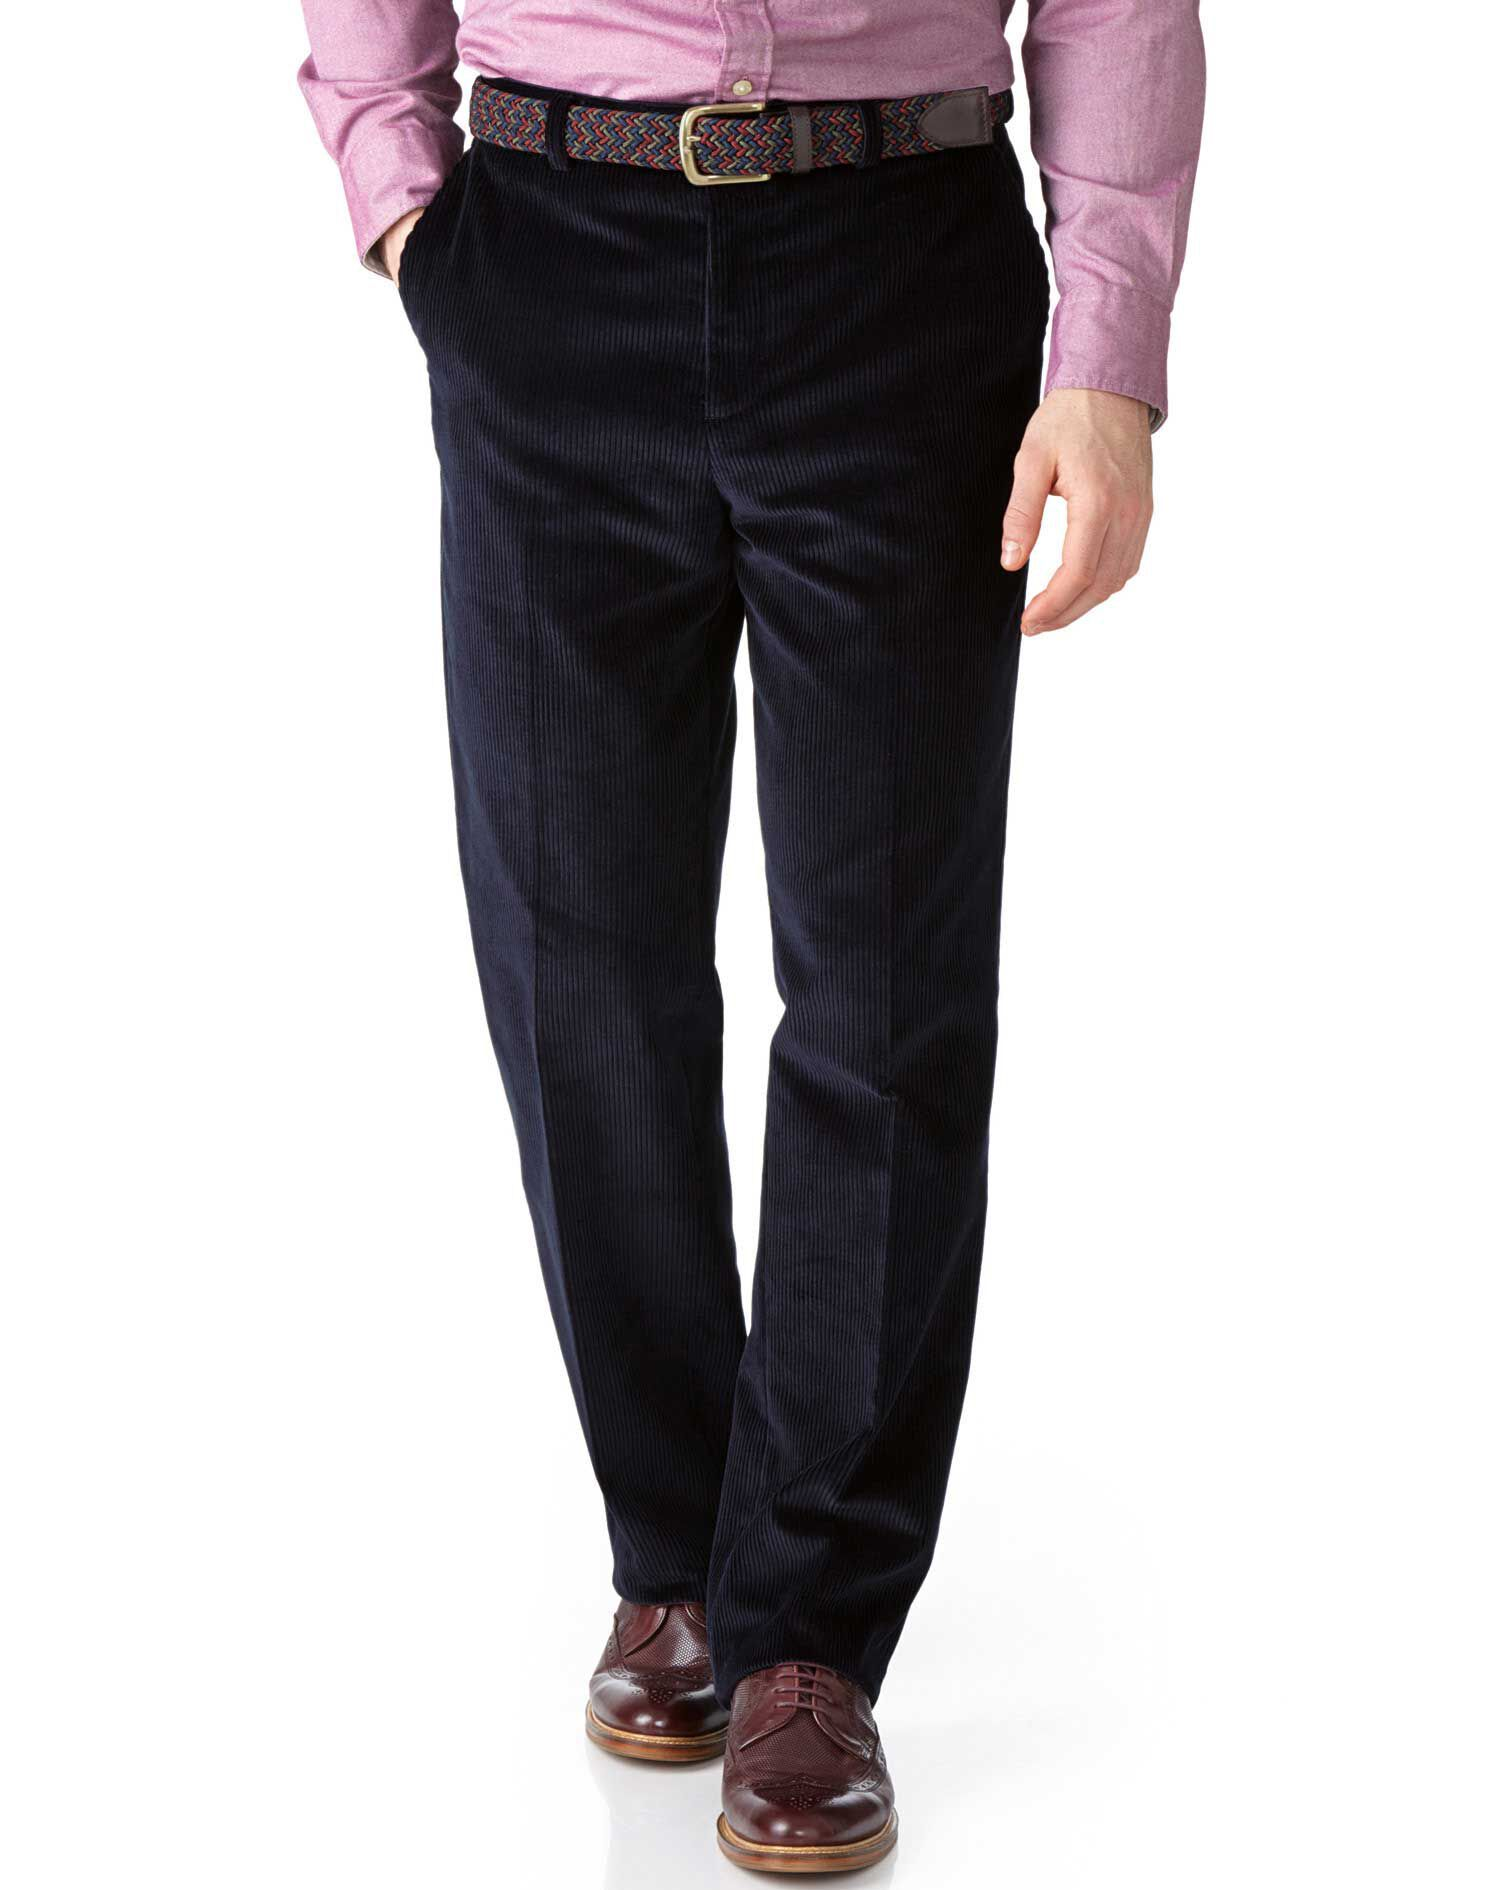 Navy Classic Fit Jumbo Cord Trousers Size W32 L32 by Charles Tyrwhitt